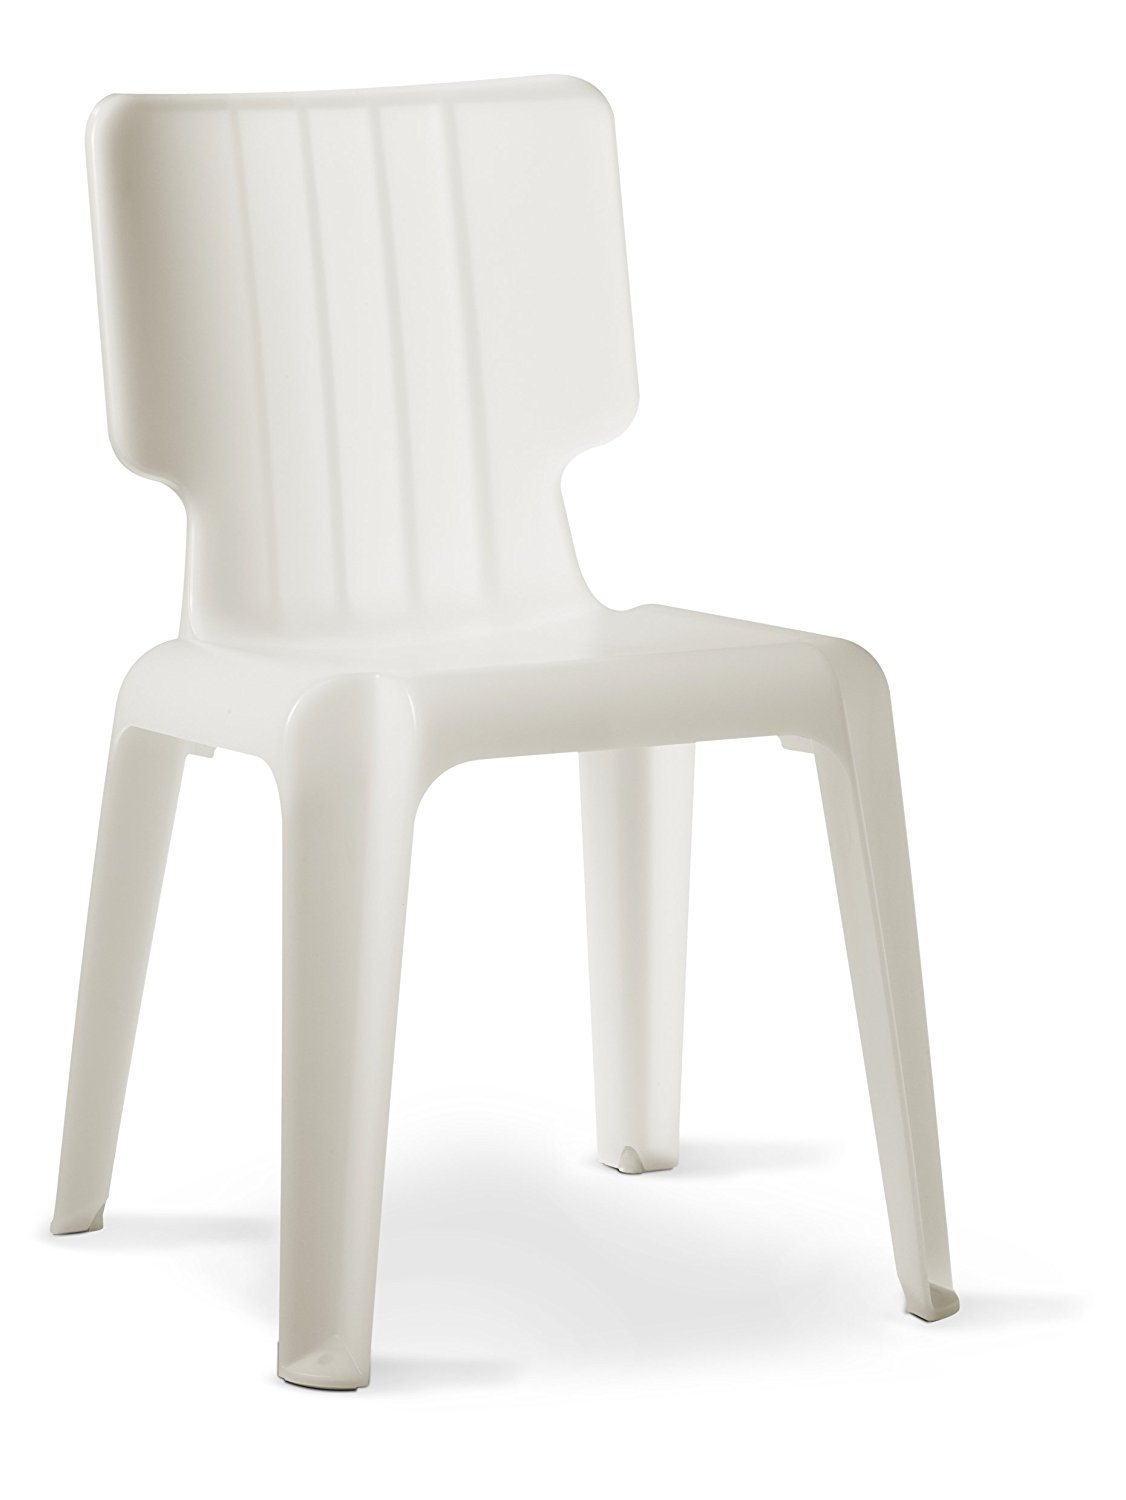 white stackable plastic chairs. Get Quotations · Authentics Wait Plastic Chair, Stackable White, Plastic, 1085028 White Chairs